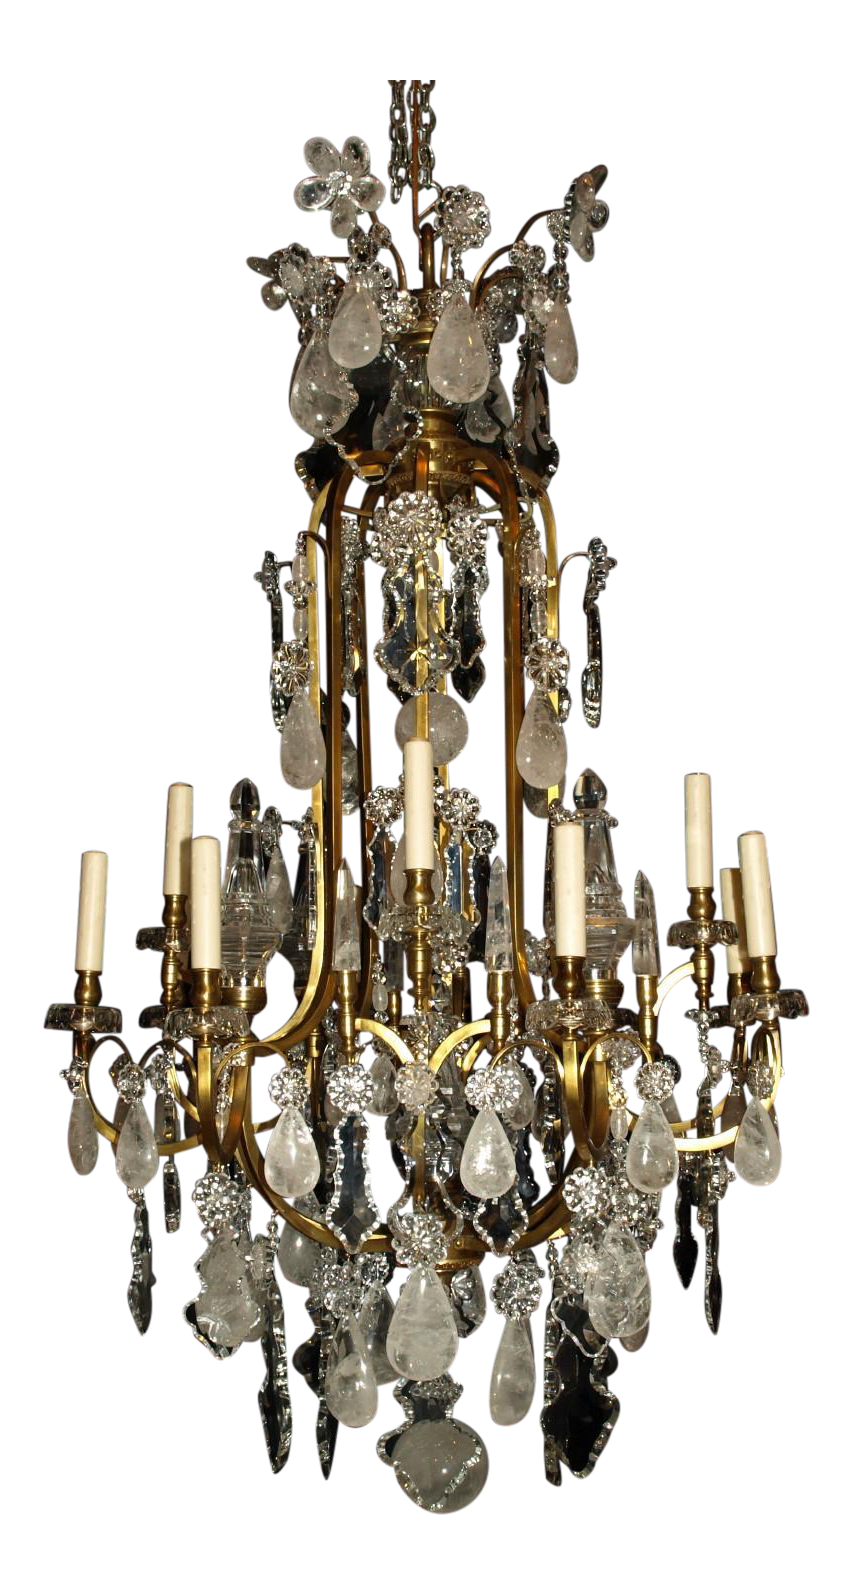 Exquisite antique chandelier rock crystal chandelier by baccarat exquisite antique chandelier rock crystal chandelier by baccarat decaso aloadofball Image collections